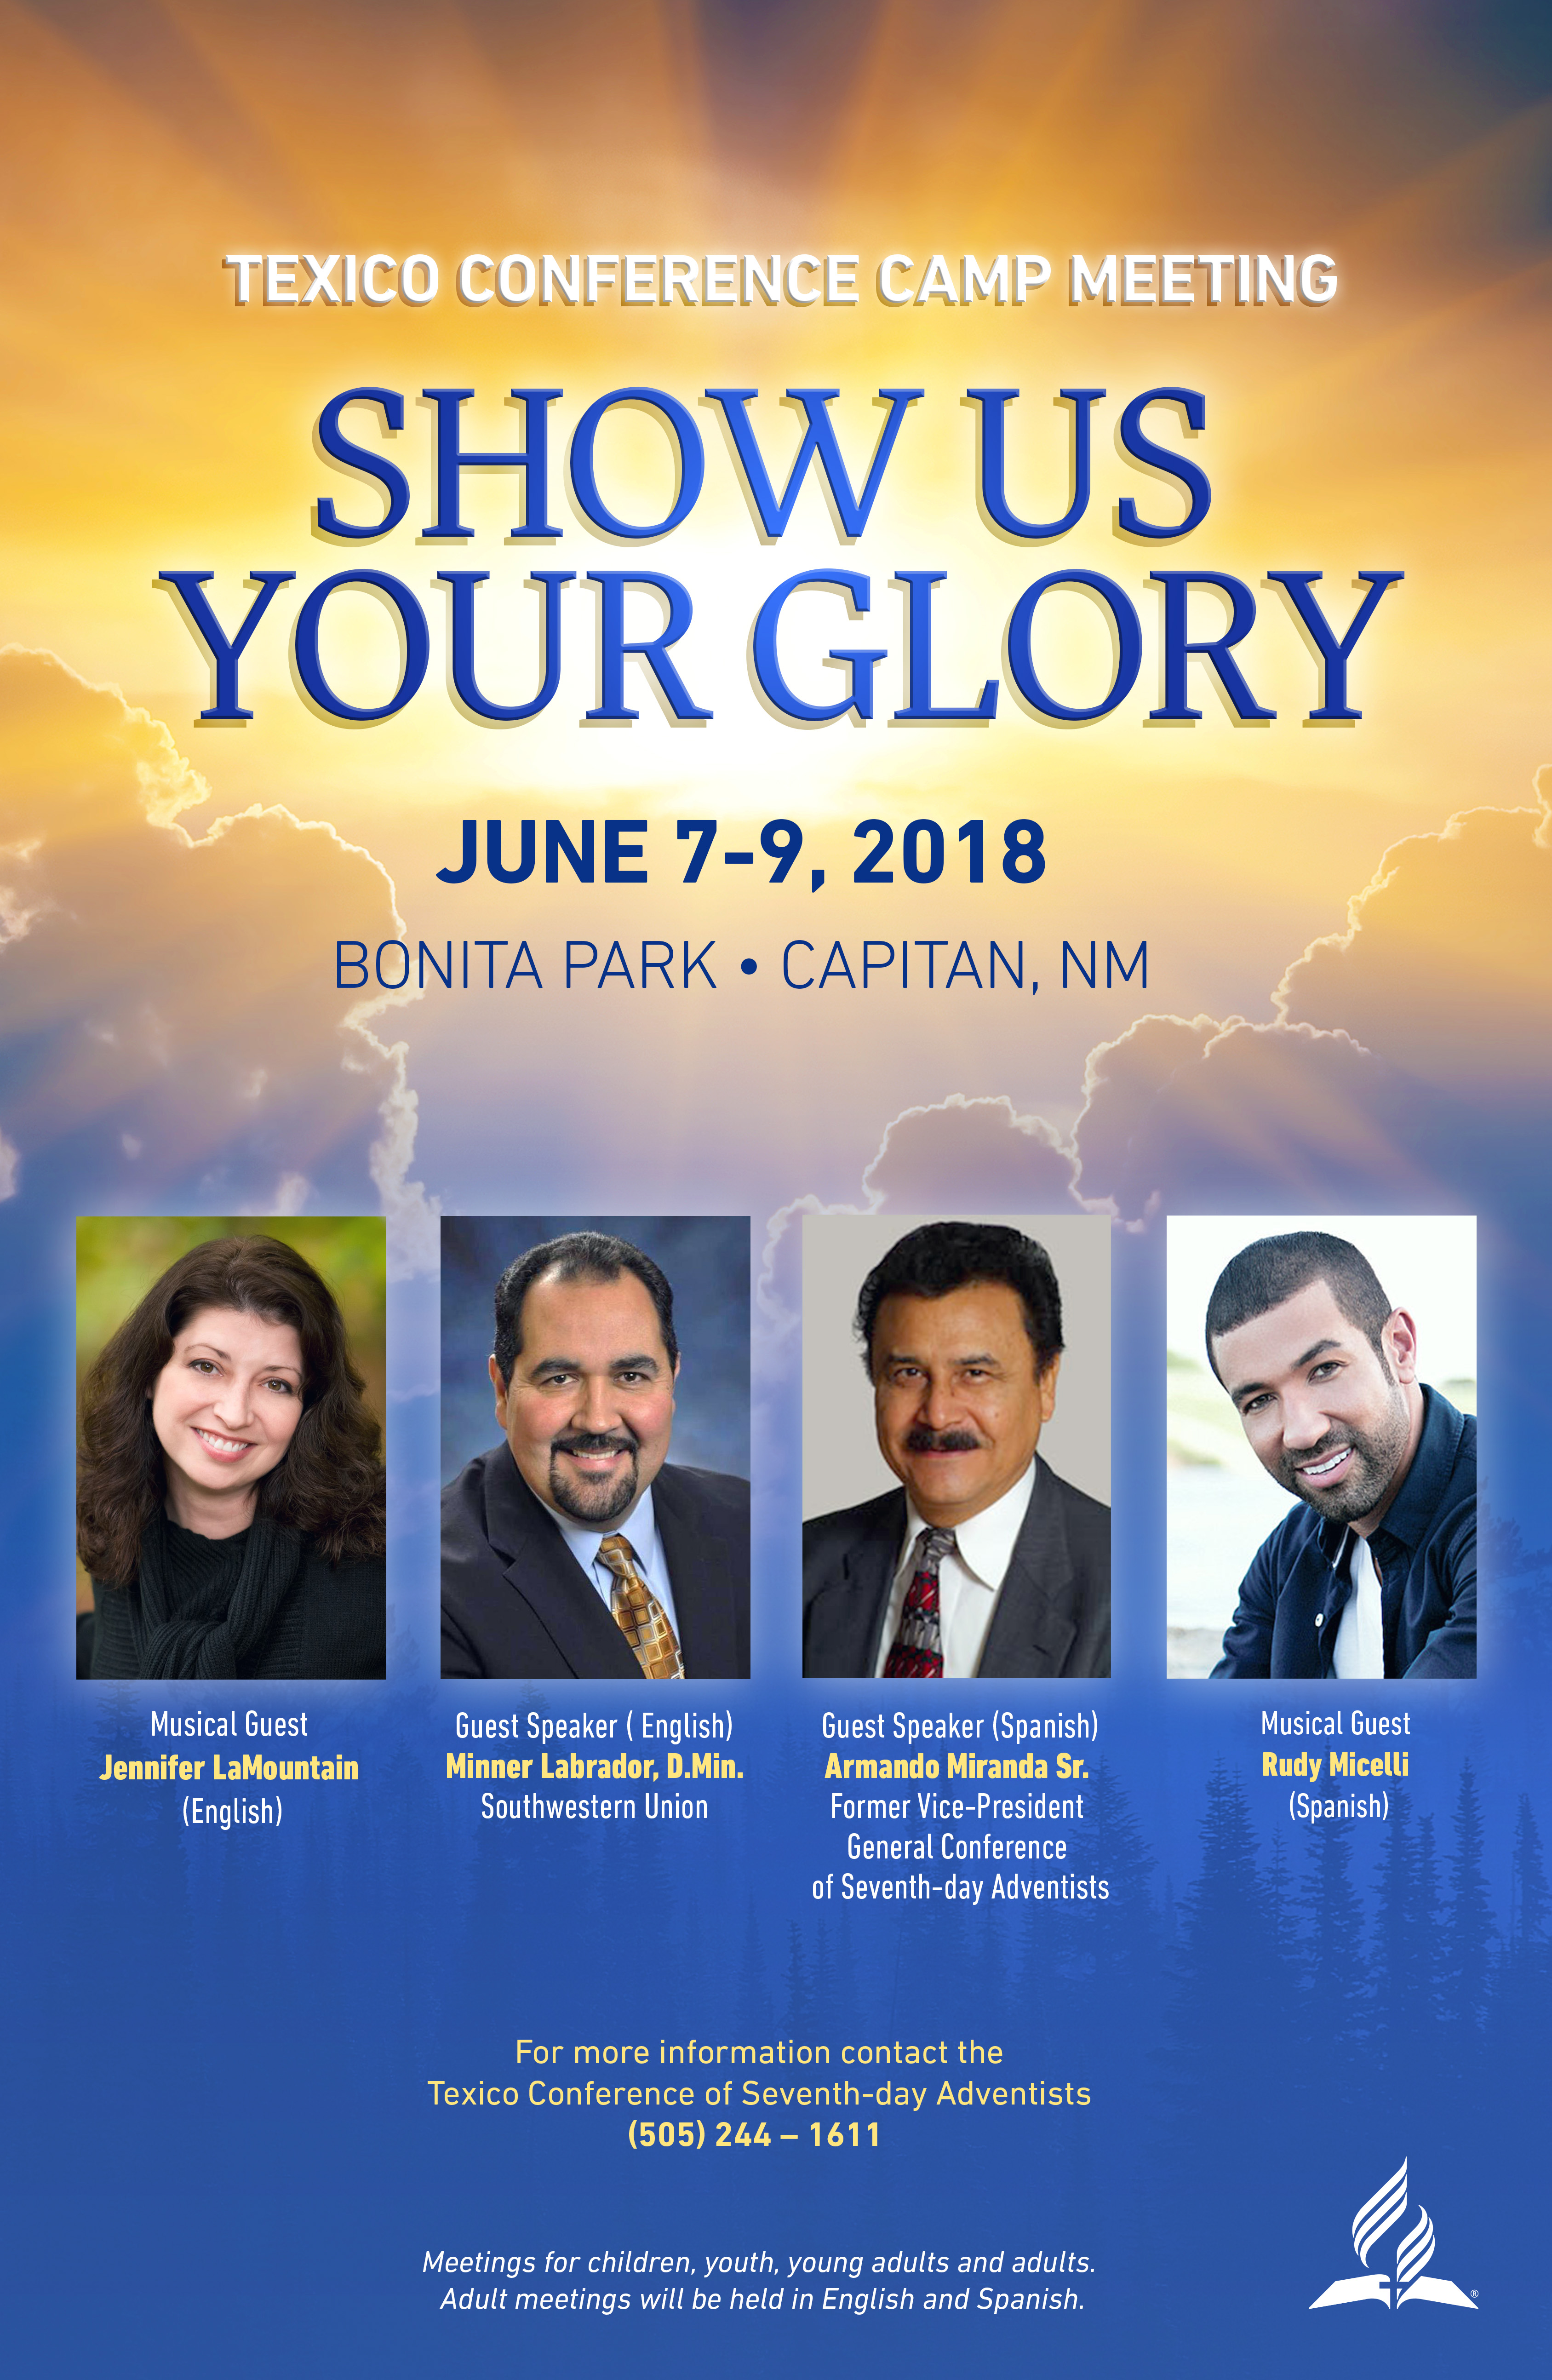 Texico Conference - Camp Meeting 2018